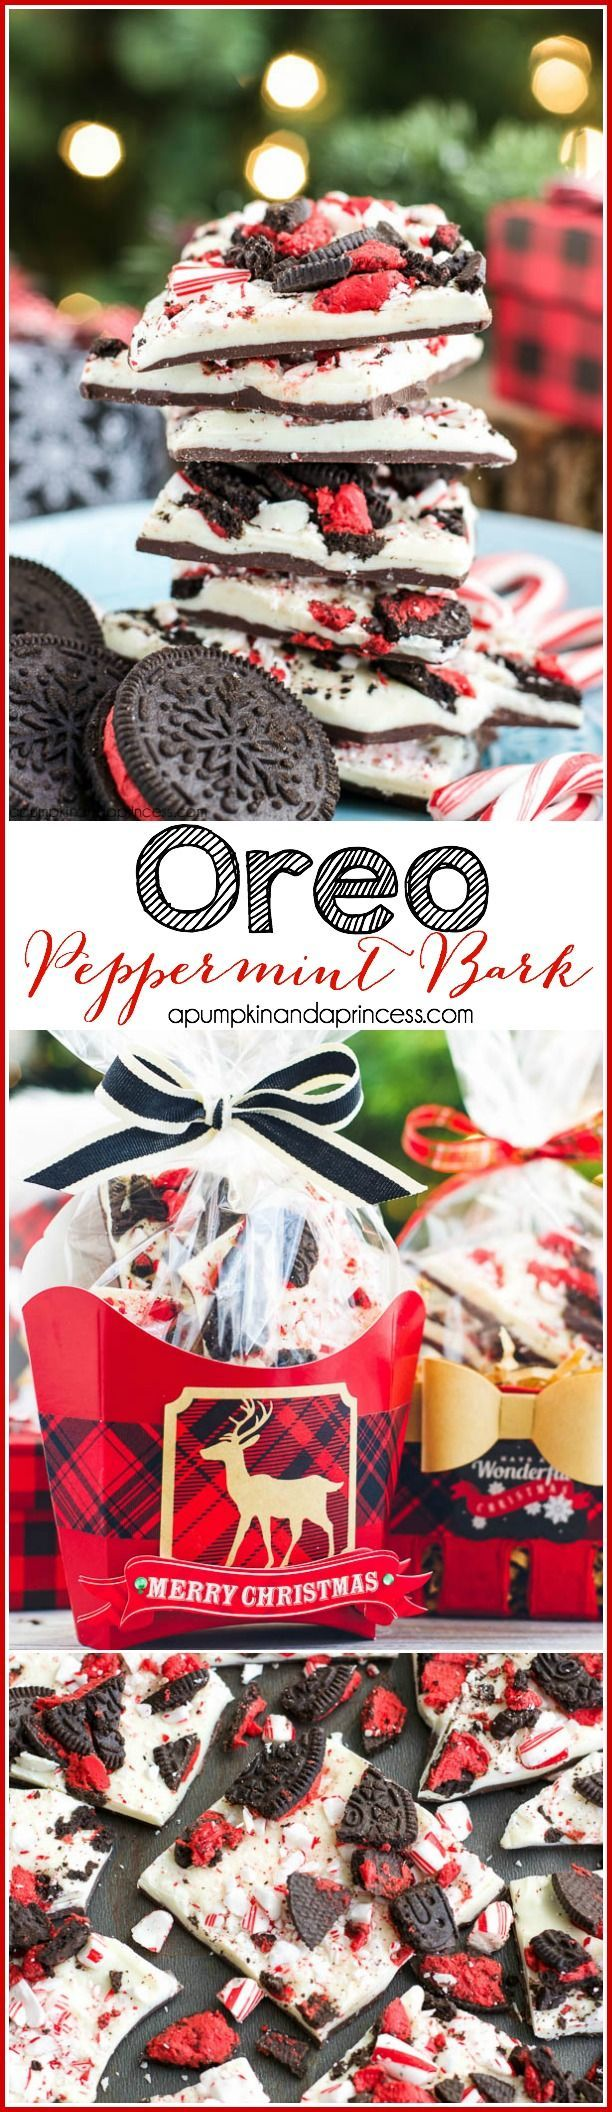 Peppermint Bark Recipe & Food Gift Wrapping Ideas for the holidays